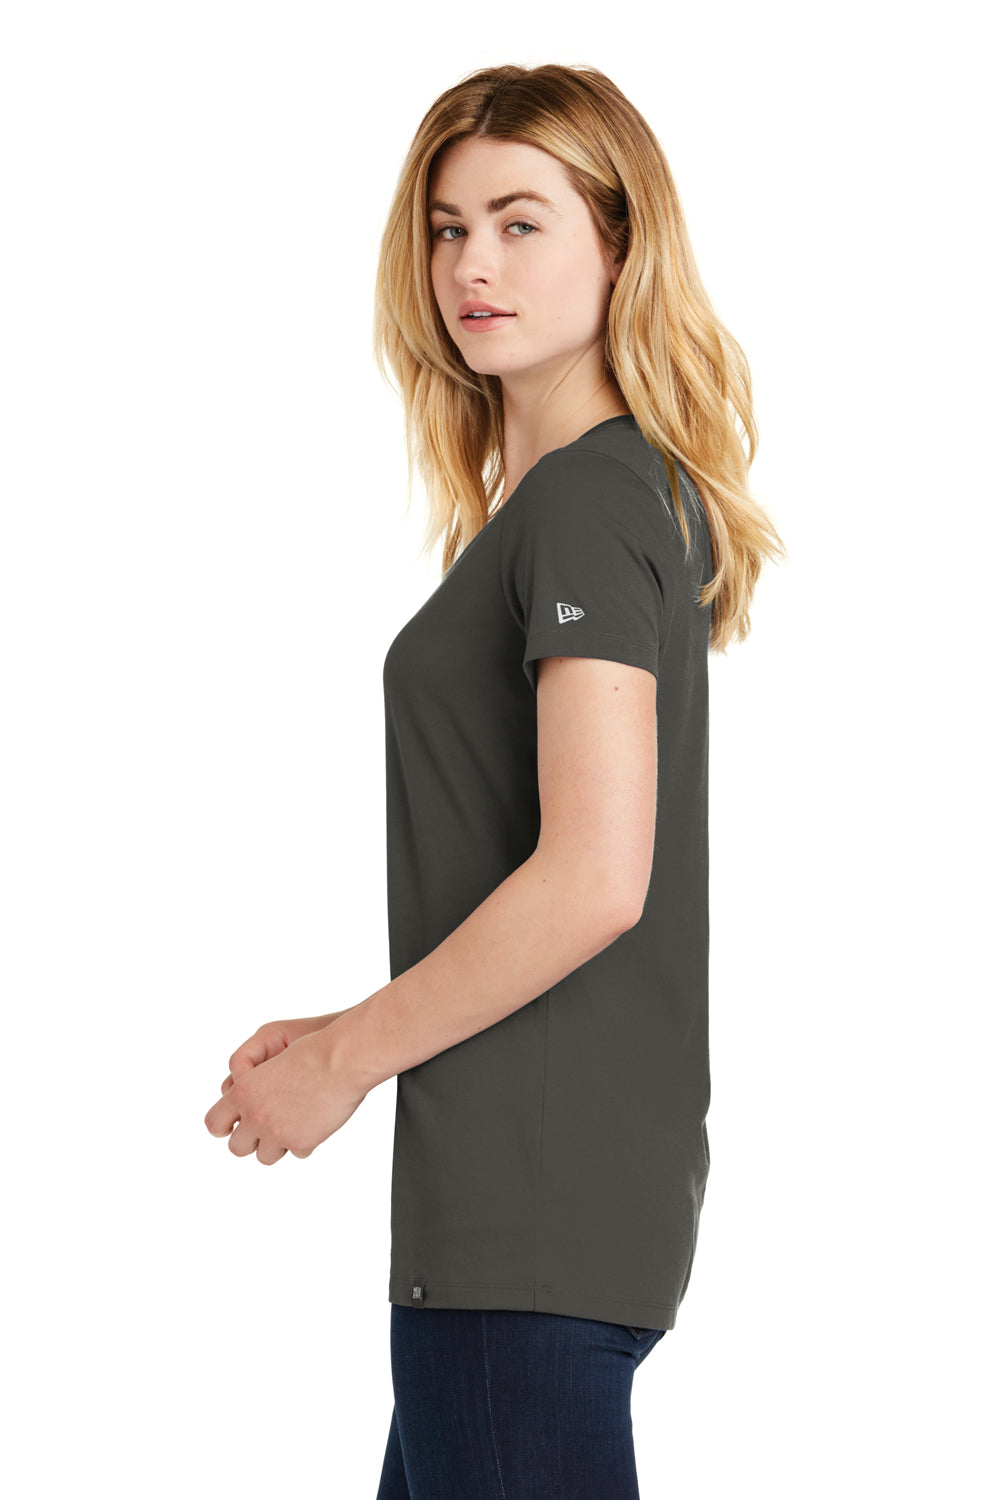 New Era LNEA101 Womens Heritage Short Sleeve V-Neck T-Shirt Graphite Grey Side